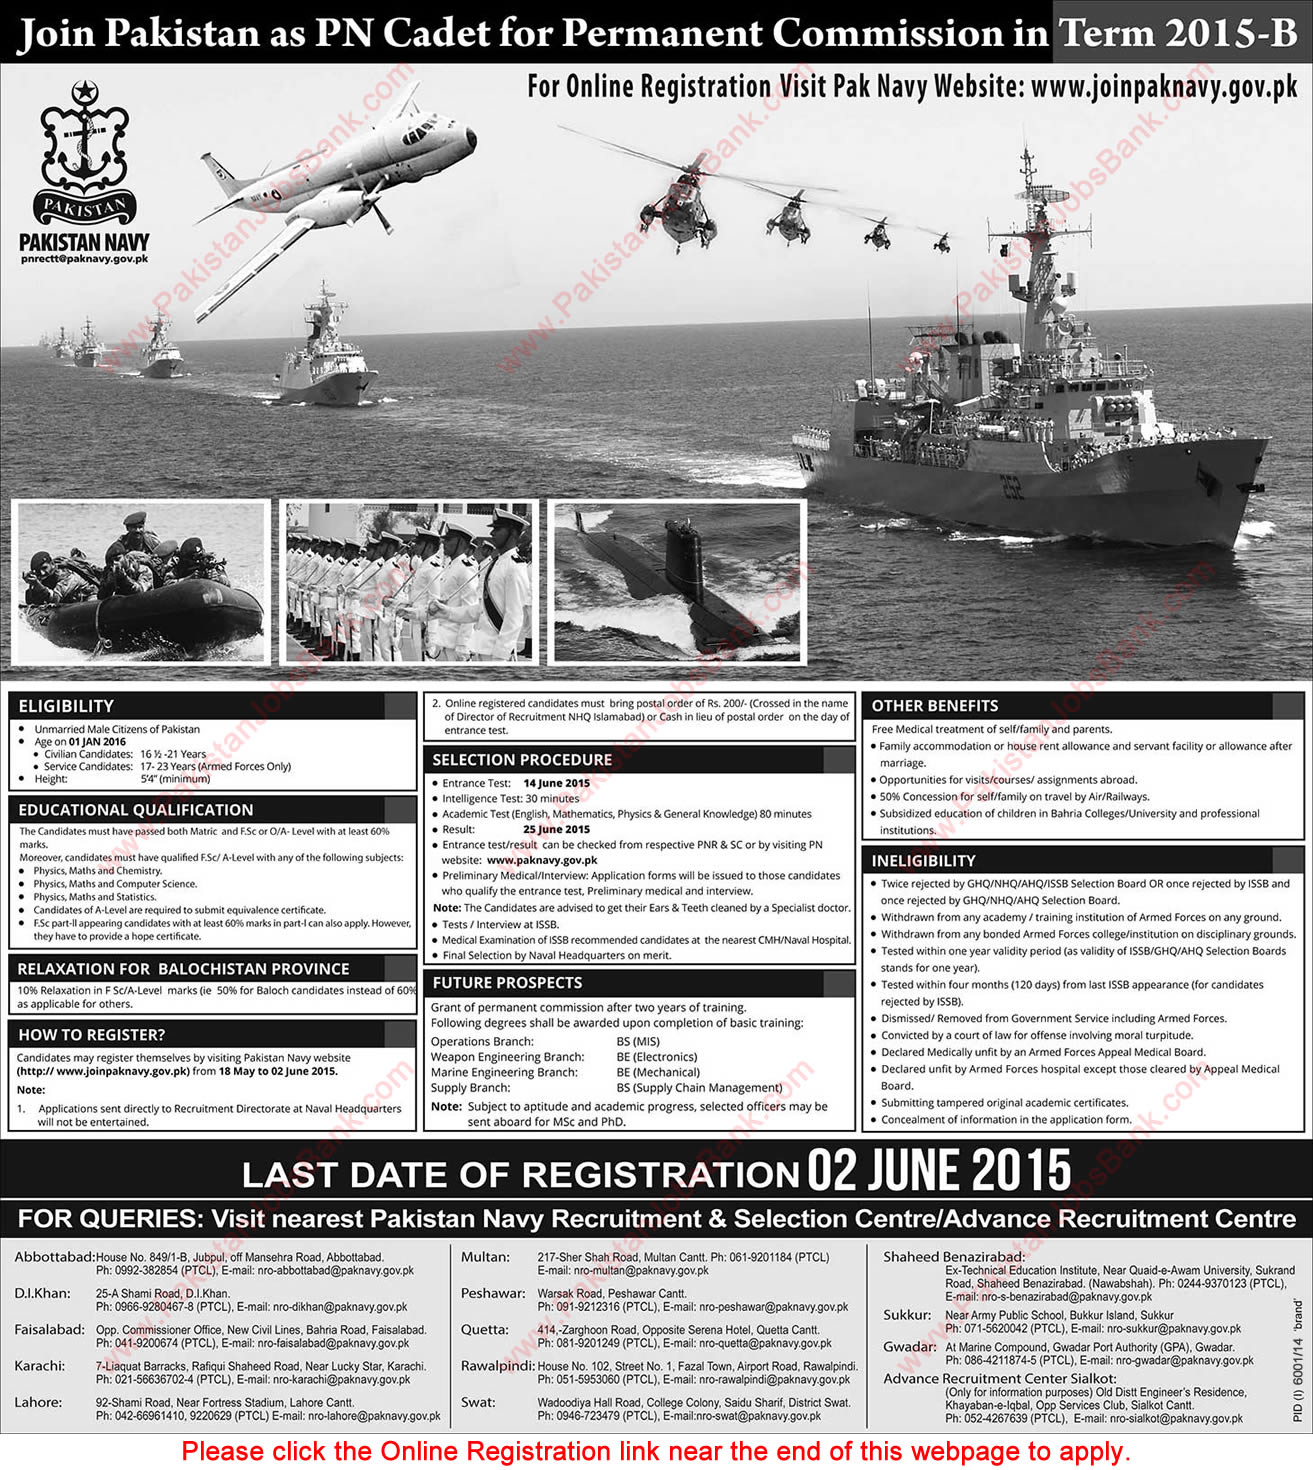 join navy online registration pn cadet permanent join navy 2015 online registration pn cadet permanent commission term 2015 b jobs